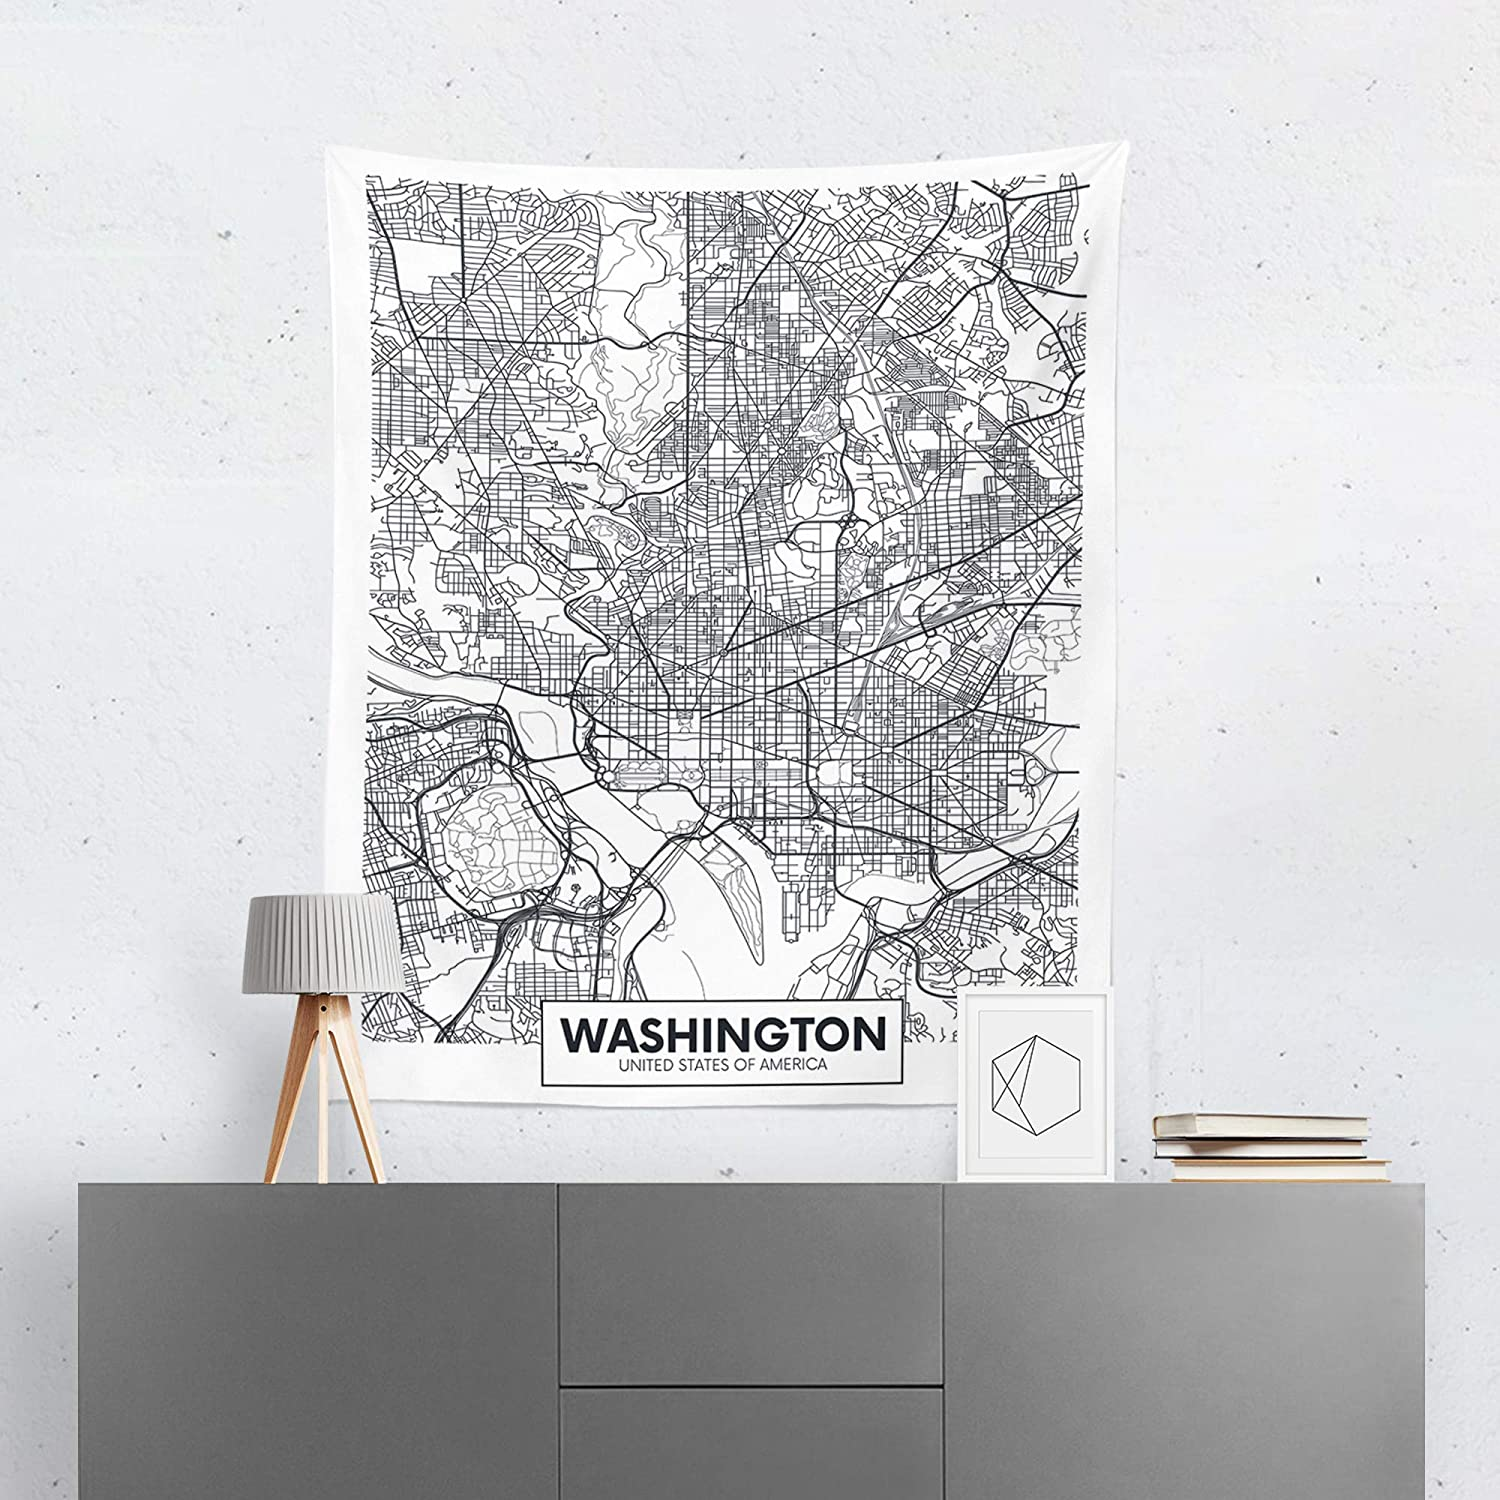 Washington Map Tapestry Wall Hanging Street Maps DC Tapestries Dorm Room Bedroom Decor Art Small to Giant Sizes Printed in the USA